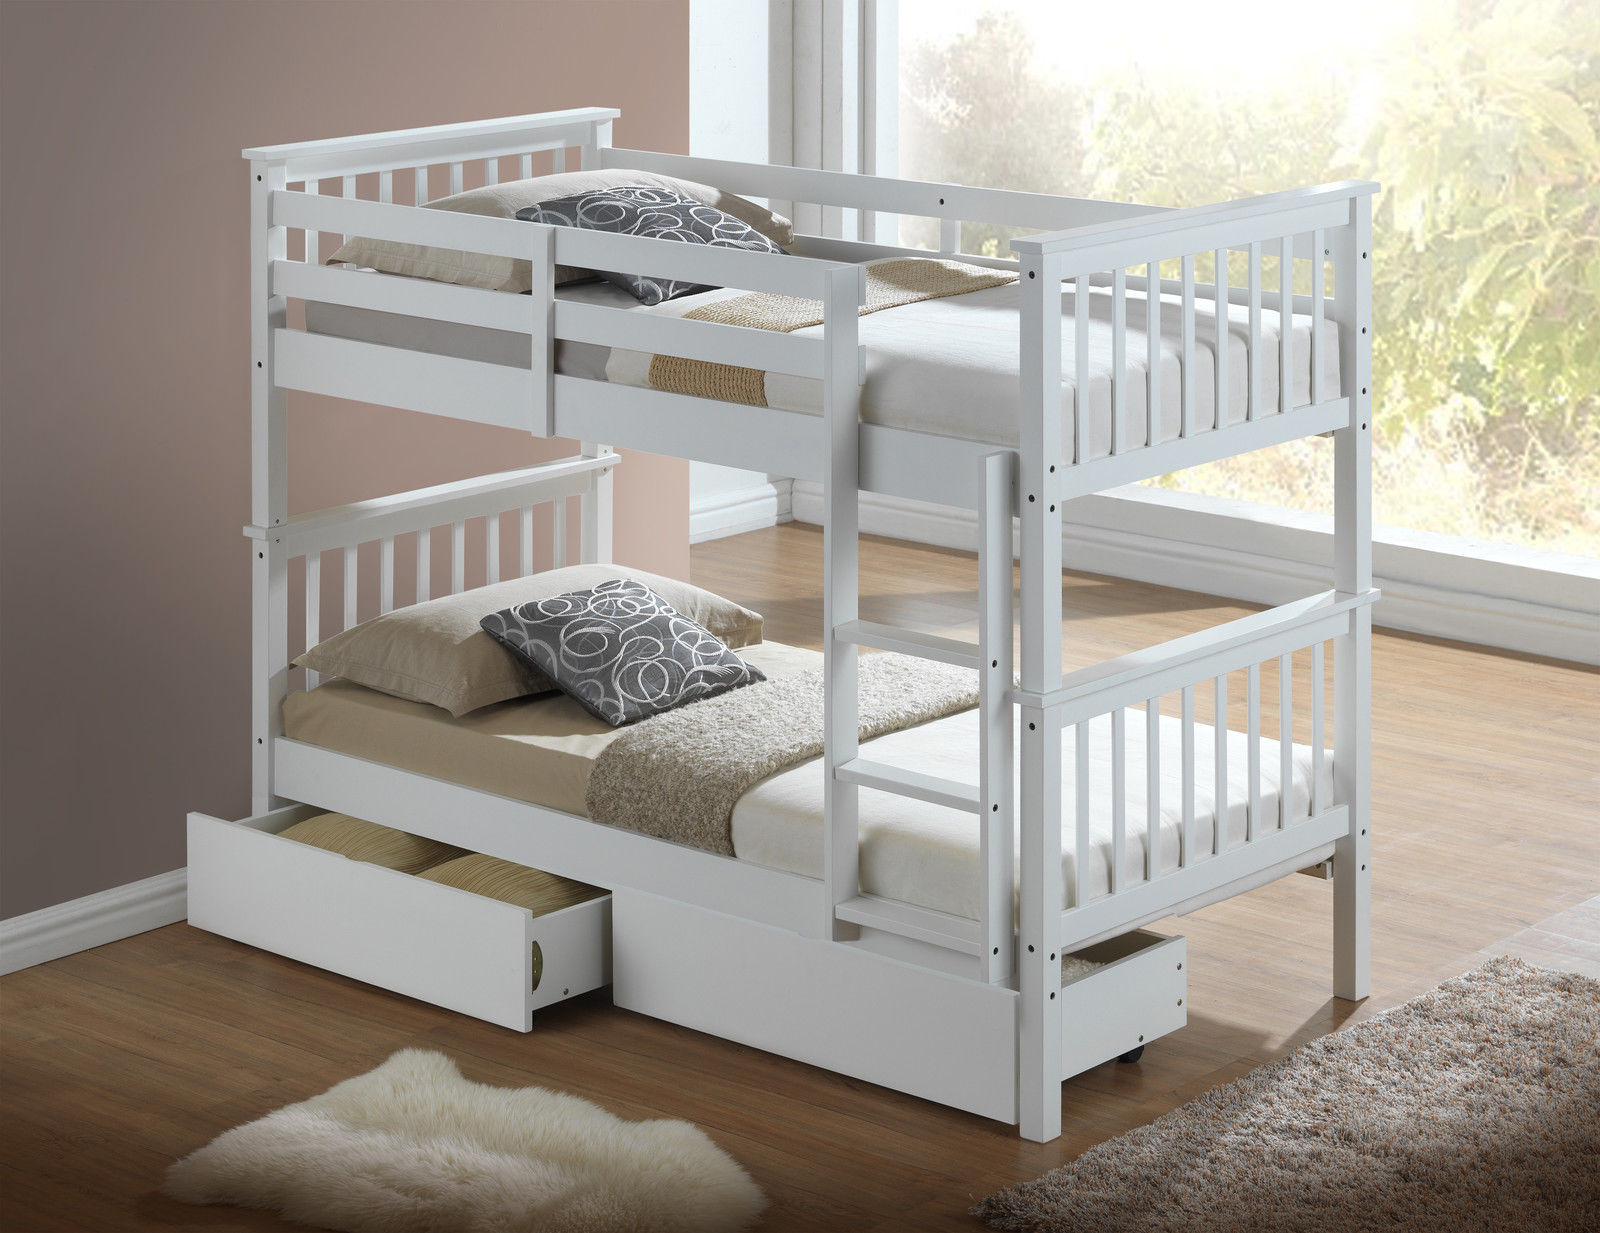 modern white childrens bunk bed with drawers. Black Bedroom Furniture Sets. Home Design Ideas